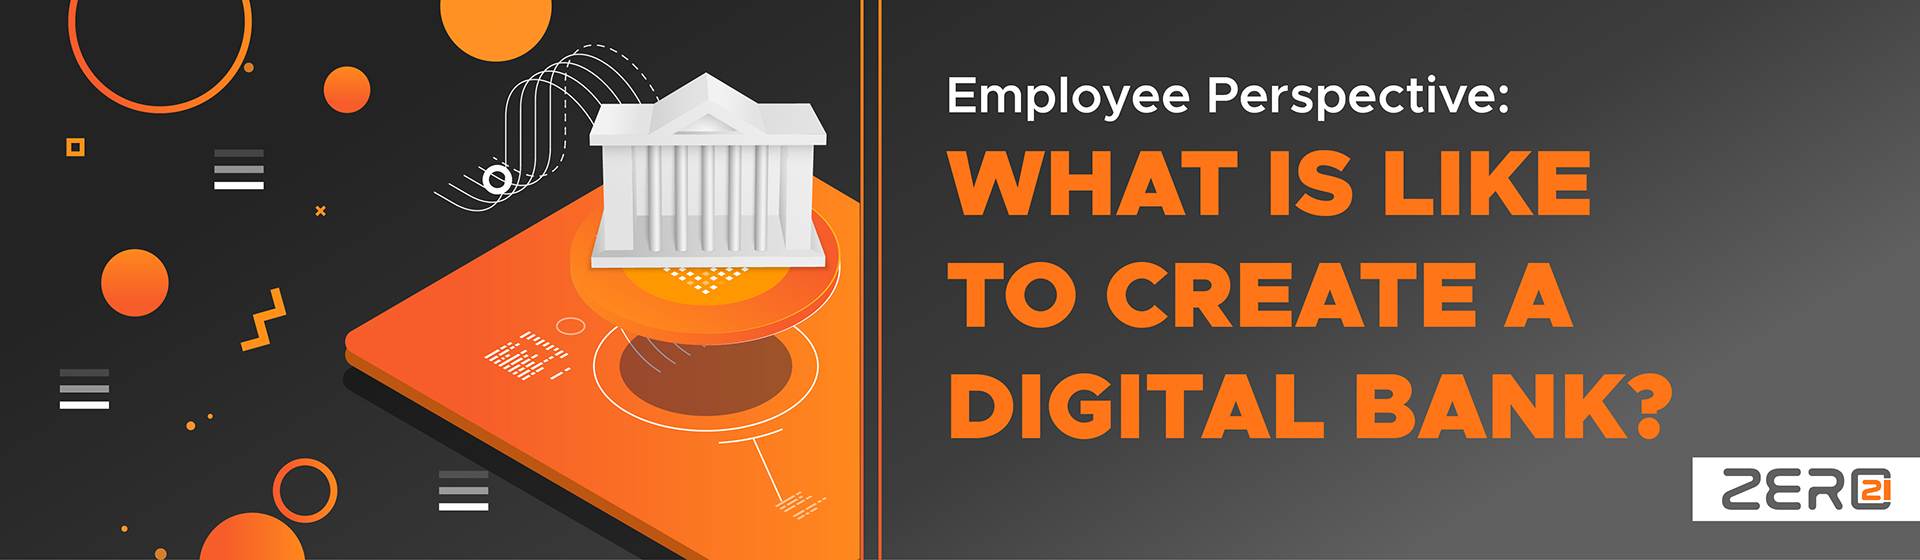 Employee Perspective: What is it like to create a digital bank?